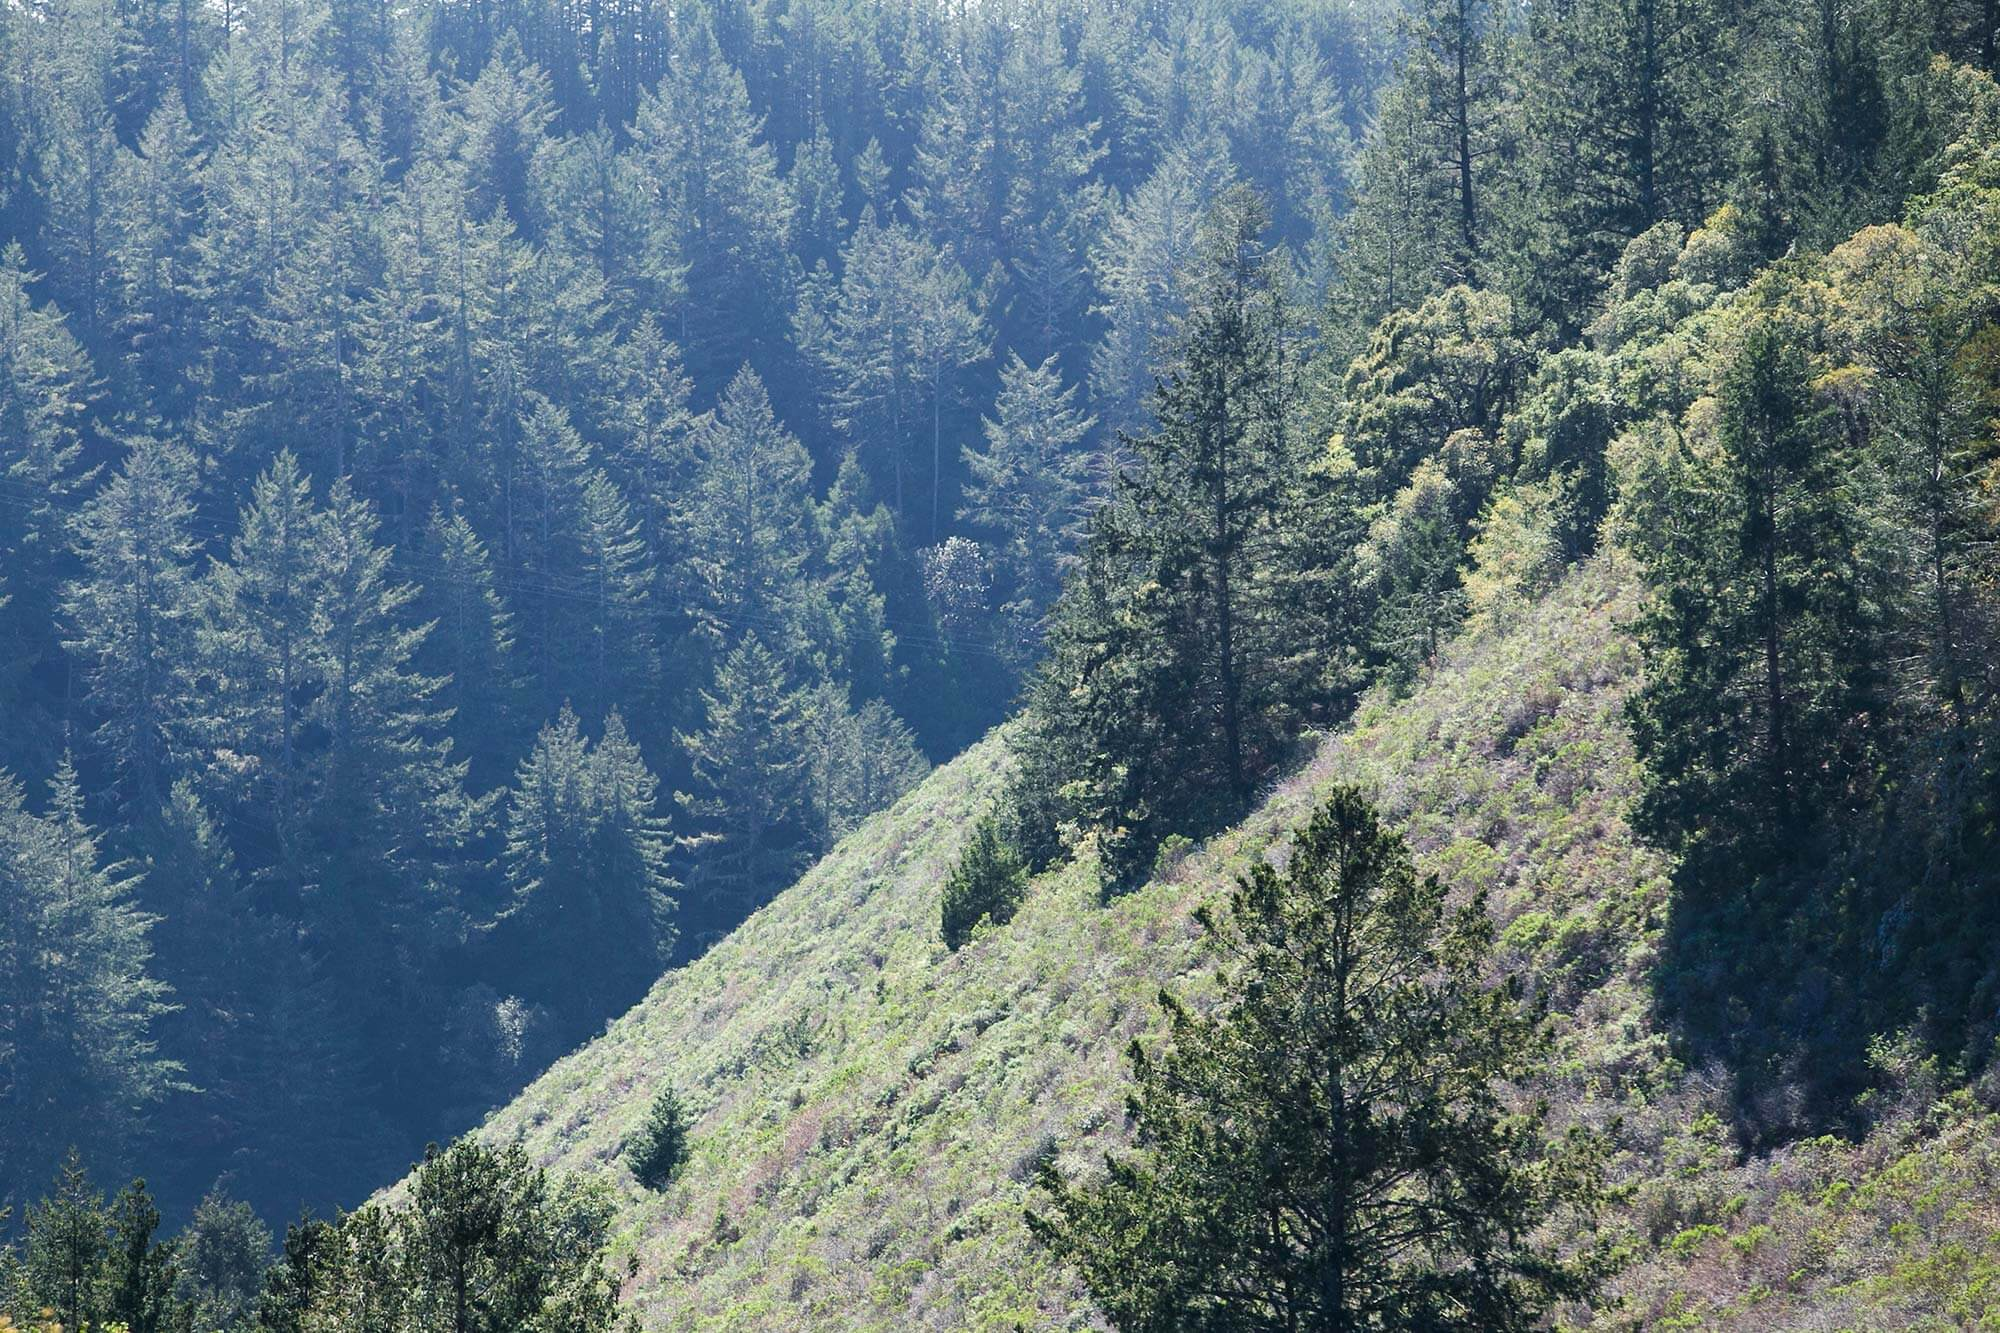 Hillside and redwood trees in San Vicente Redwoods